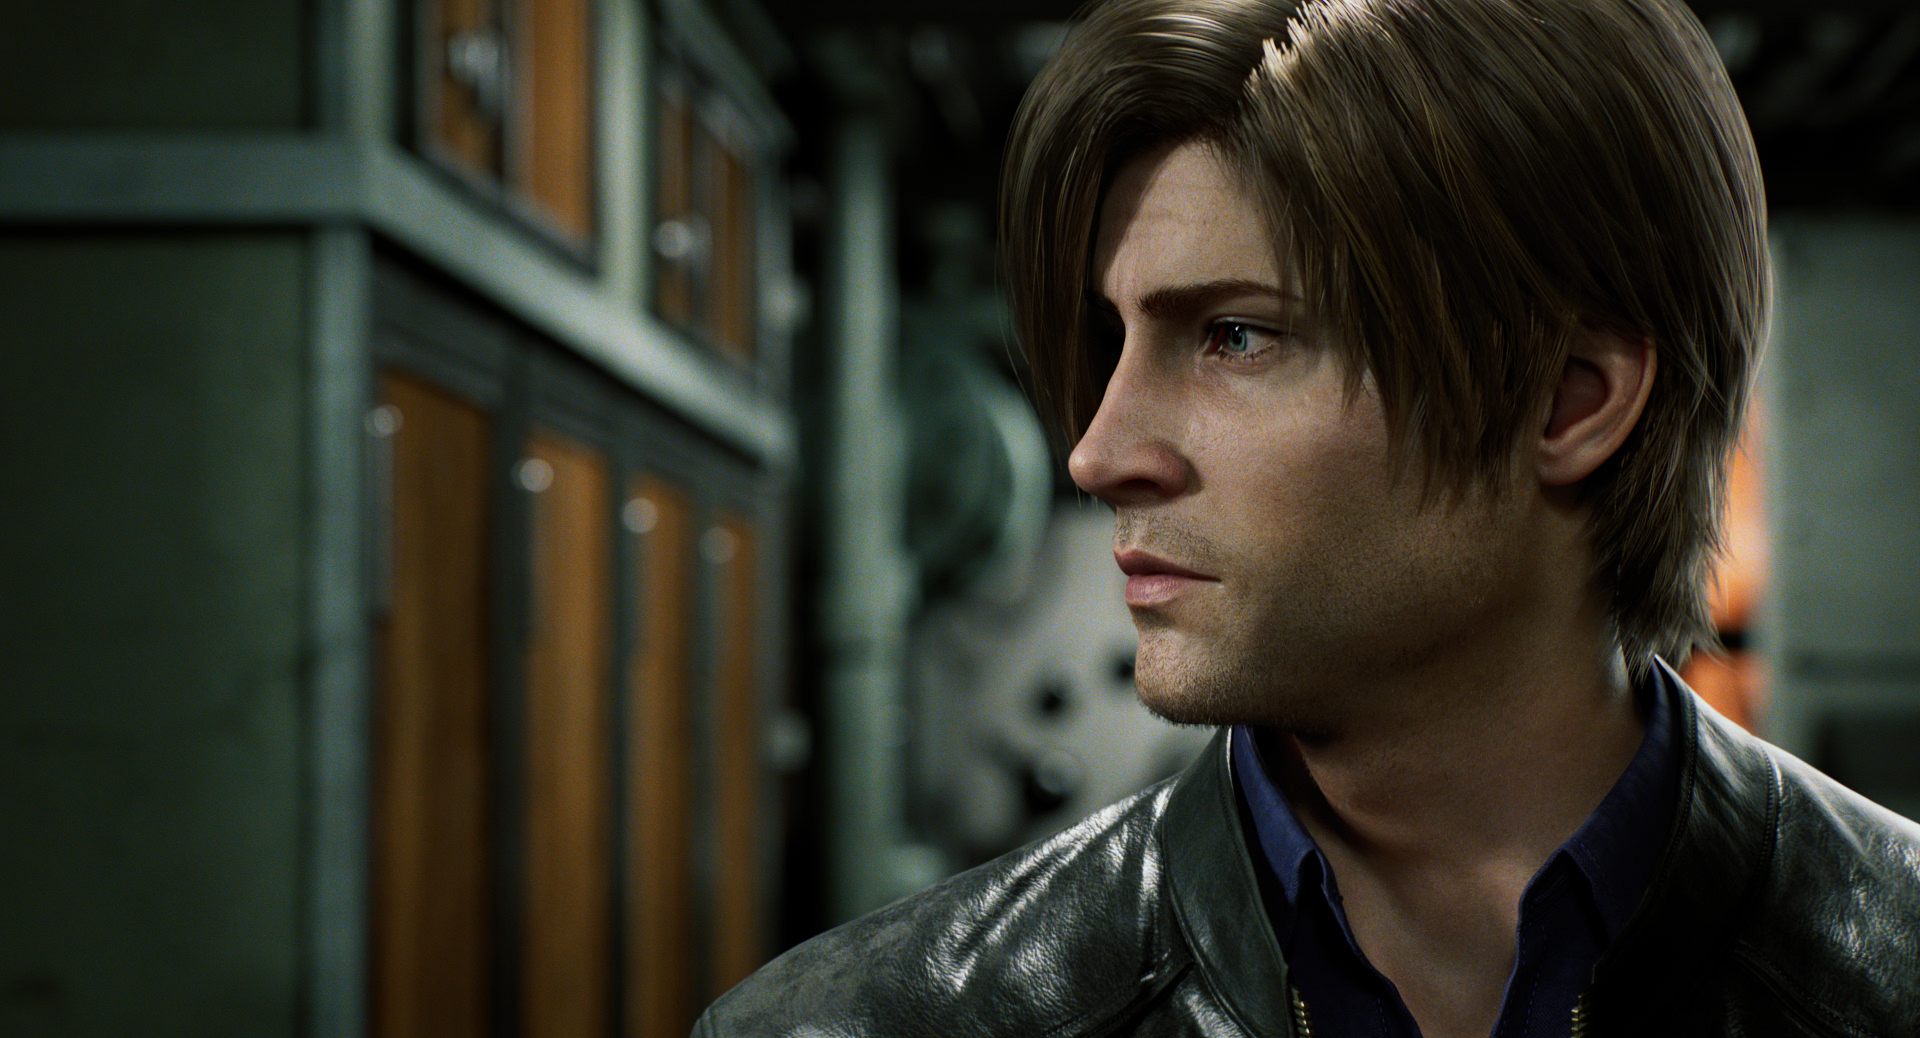 Netflix have released the official trailer for the upcoming 3DCG animation series Resident Evil: Infinite Darkness.